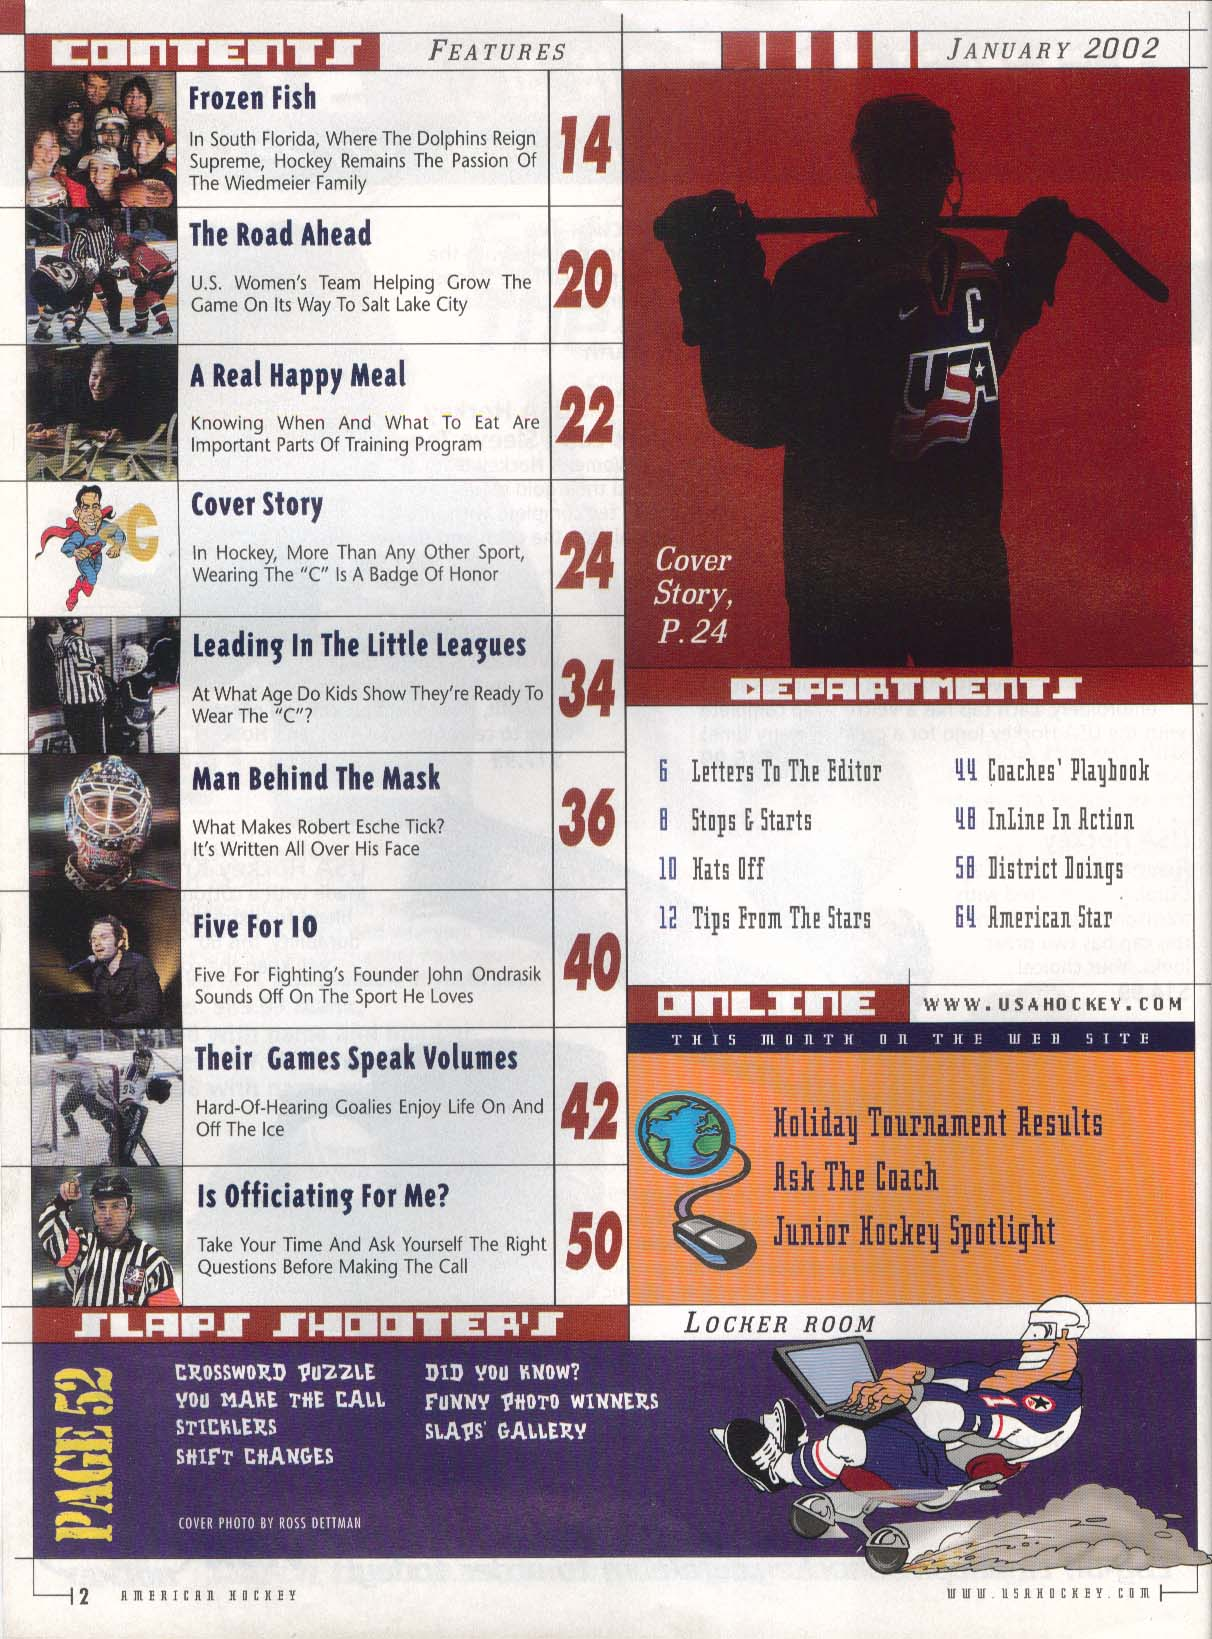 AMERICAN HOCKEY Five For Fighting John Ondrasik Bill Guerin 2 2002